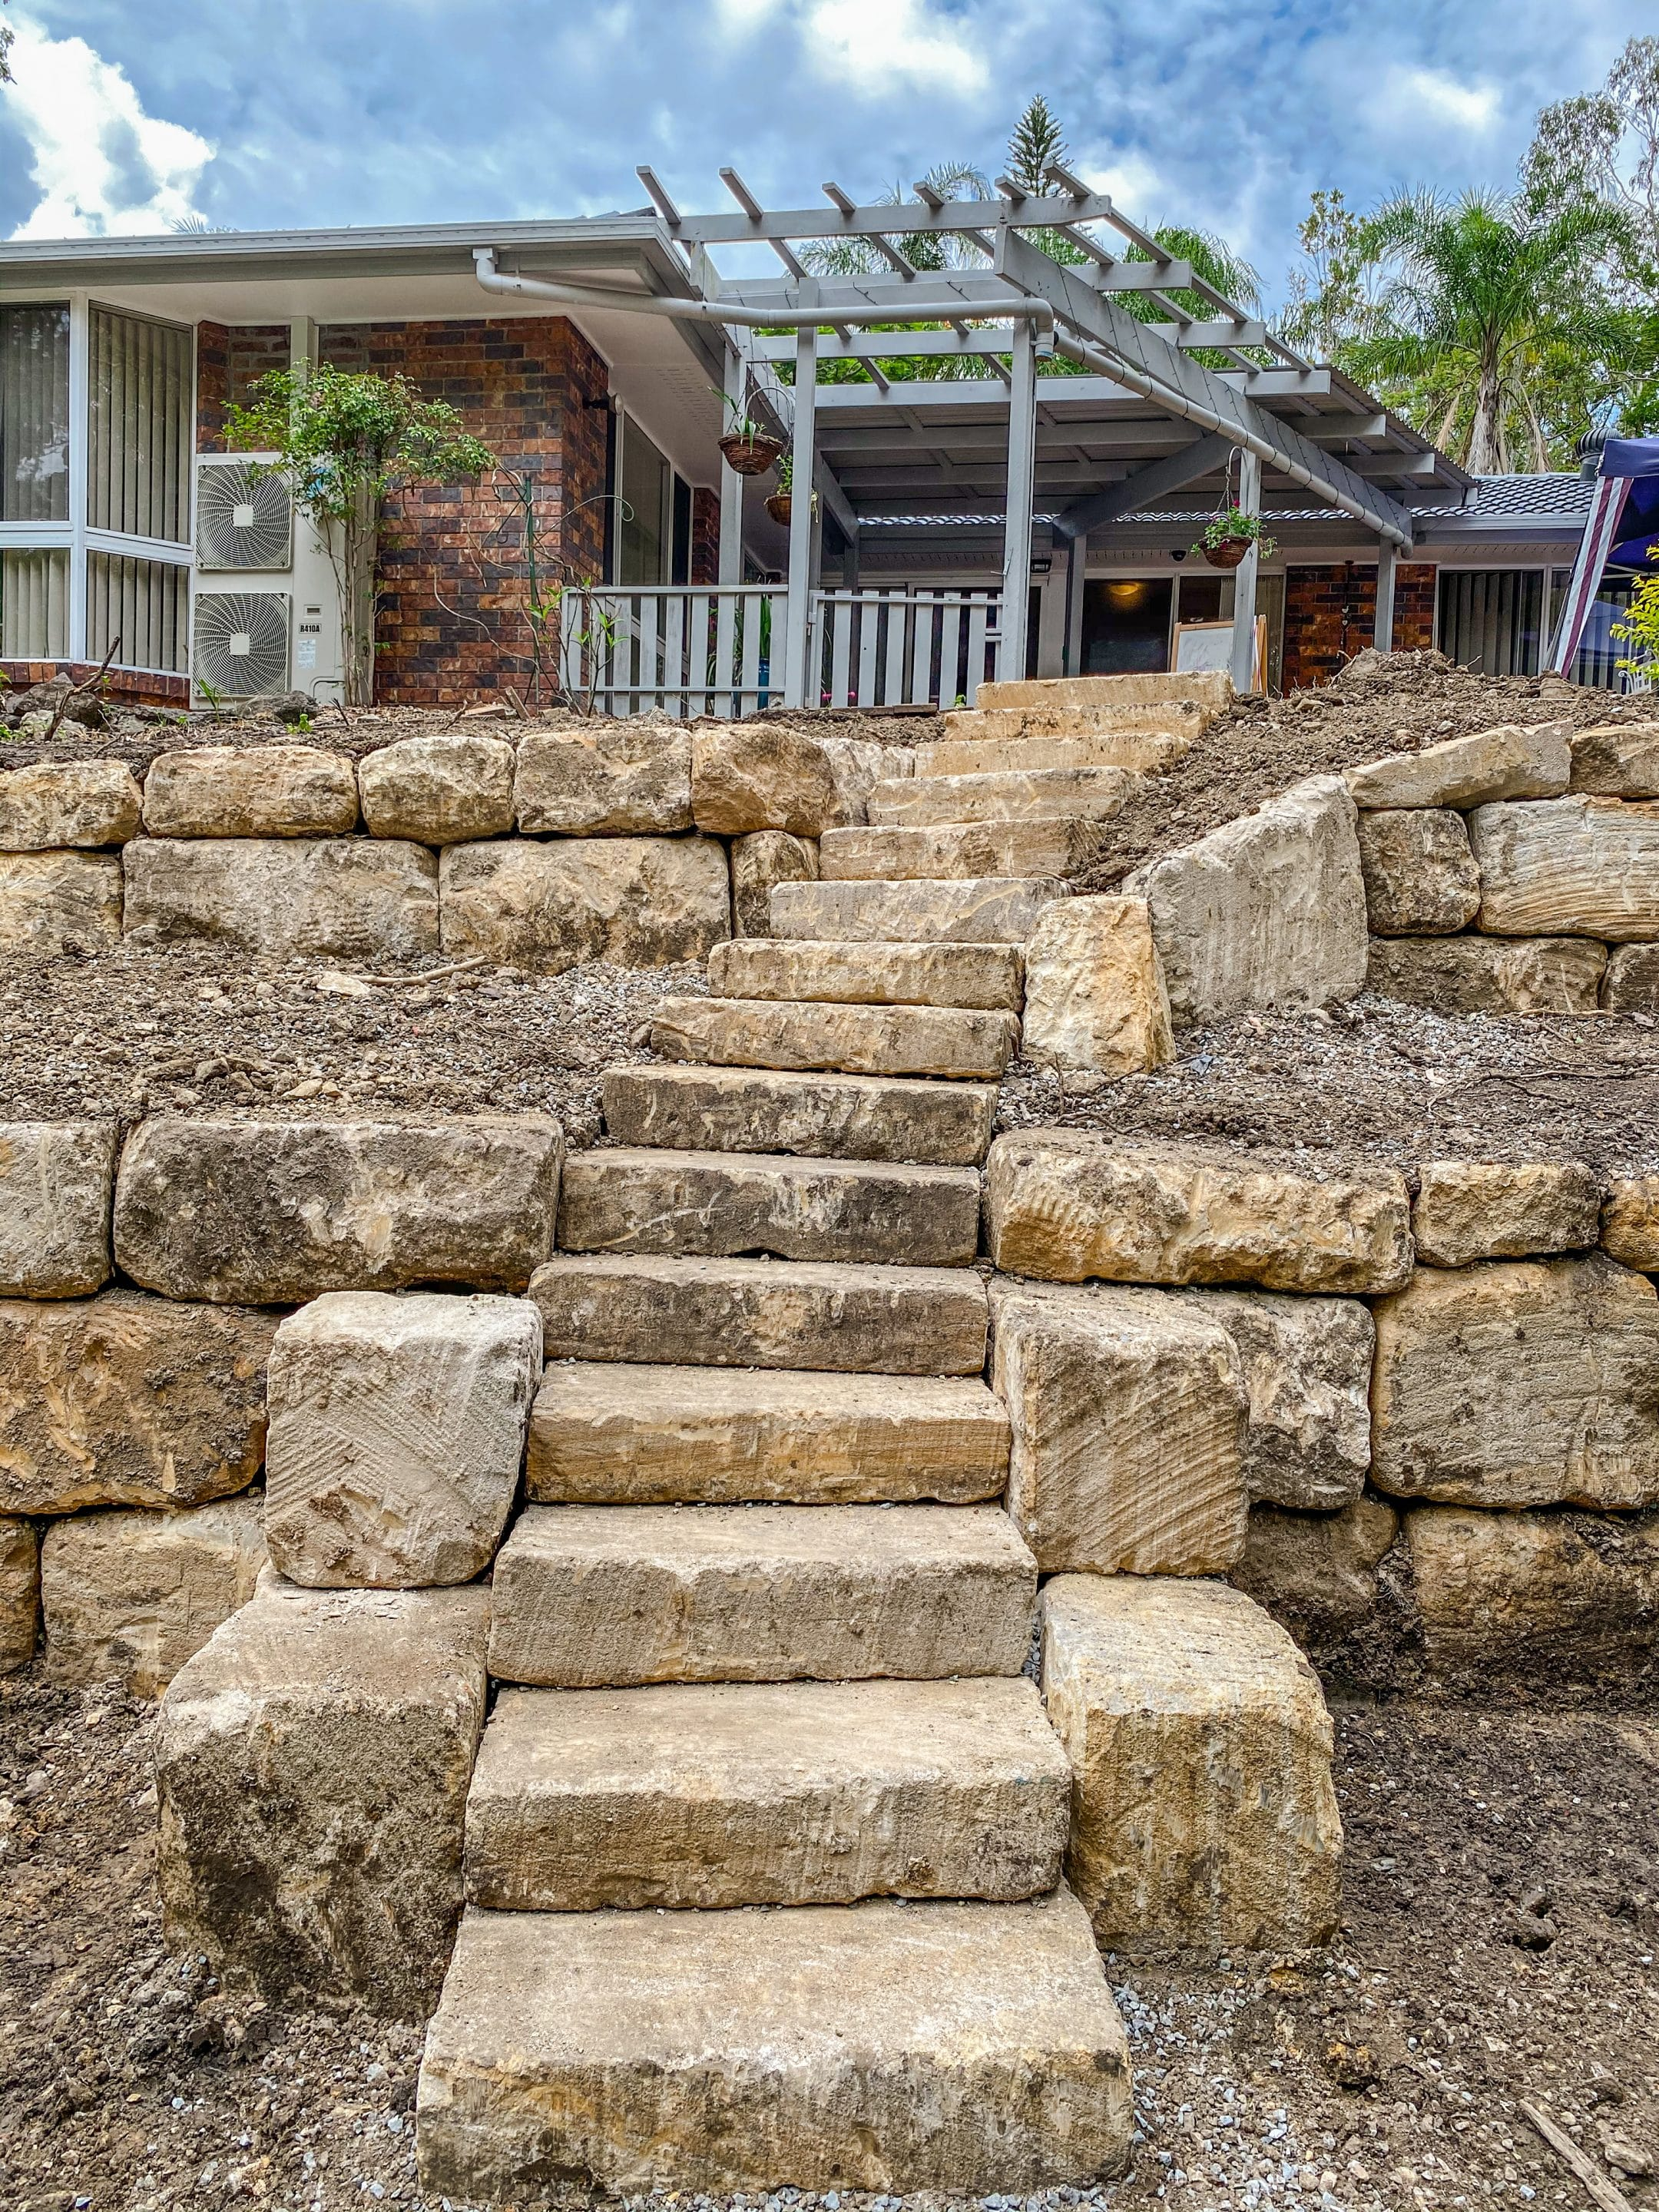 Rough sawn sandstone steps and c grade rock wall, retaining wall Gold Coast